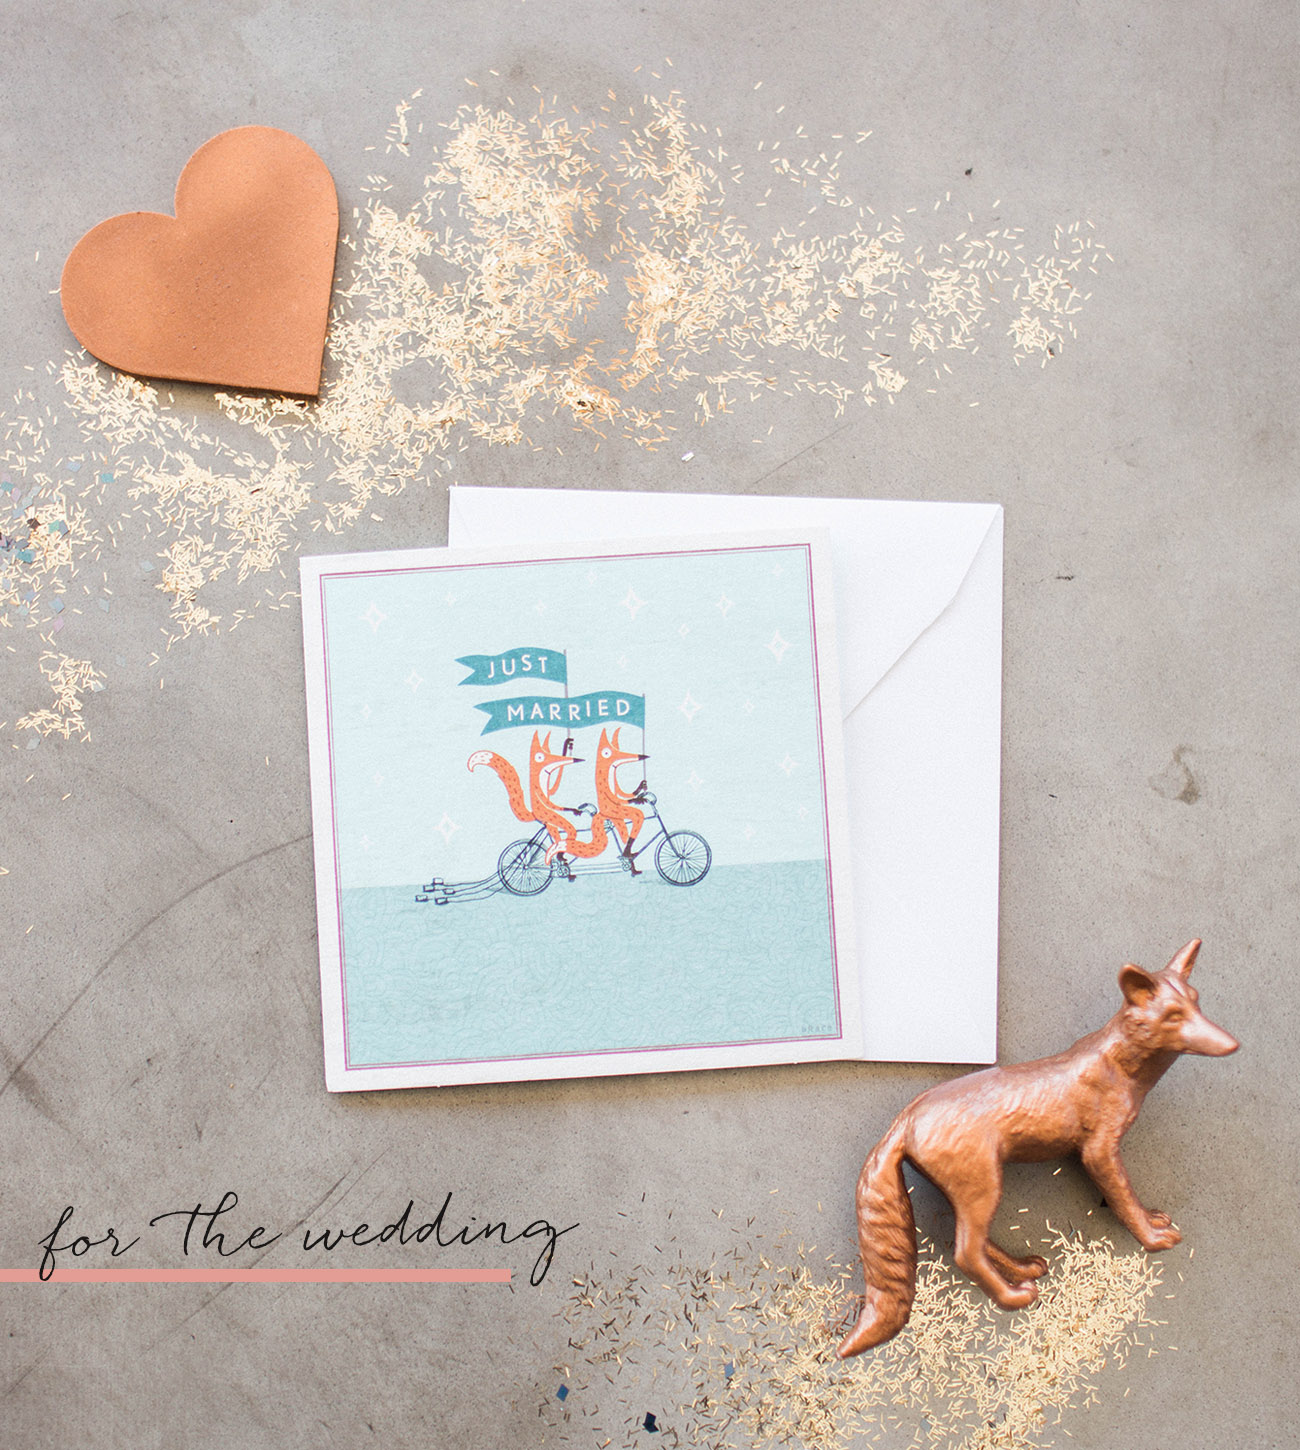 Just Married Wedding Card with Foxes